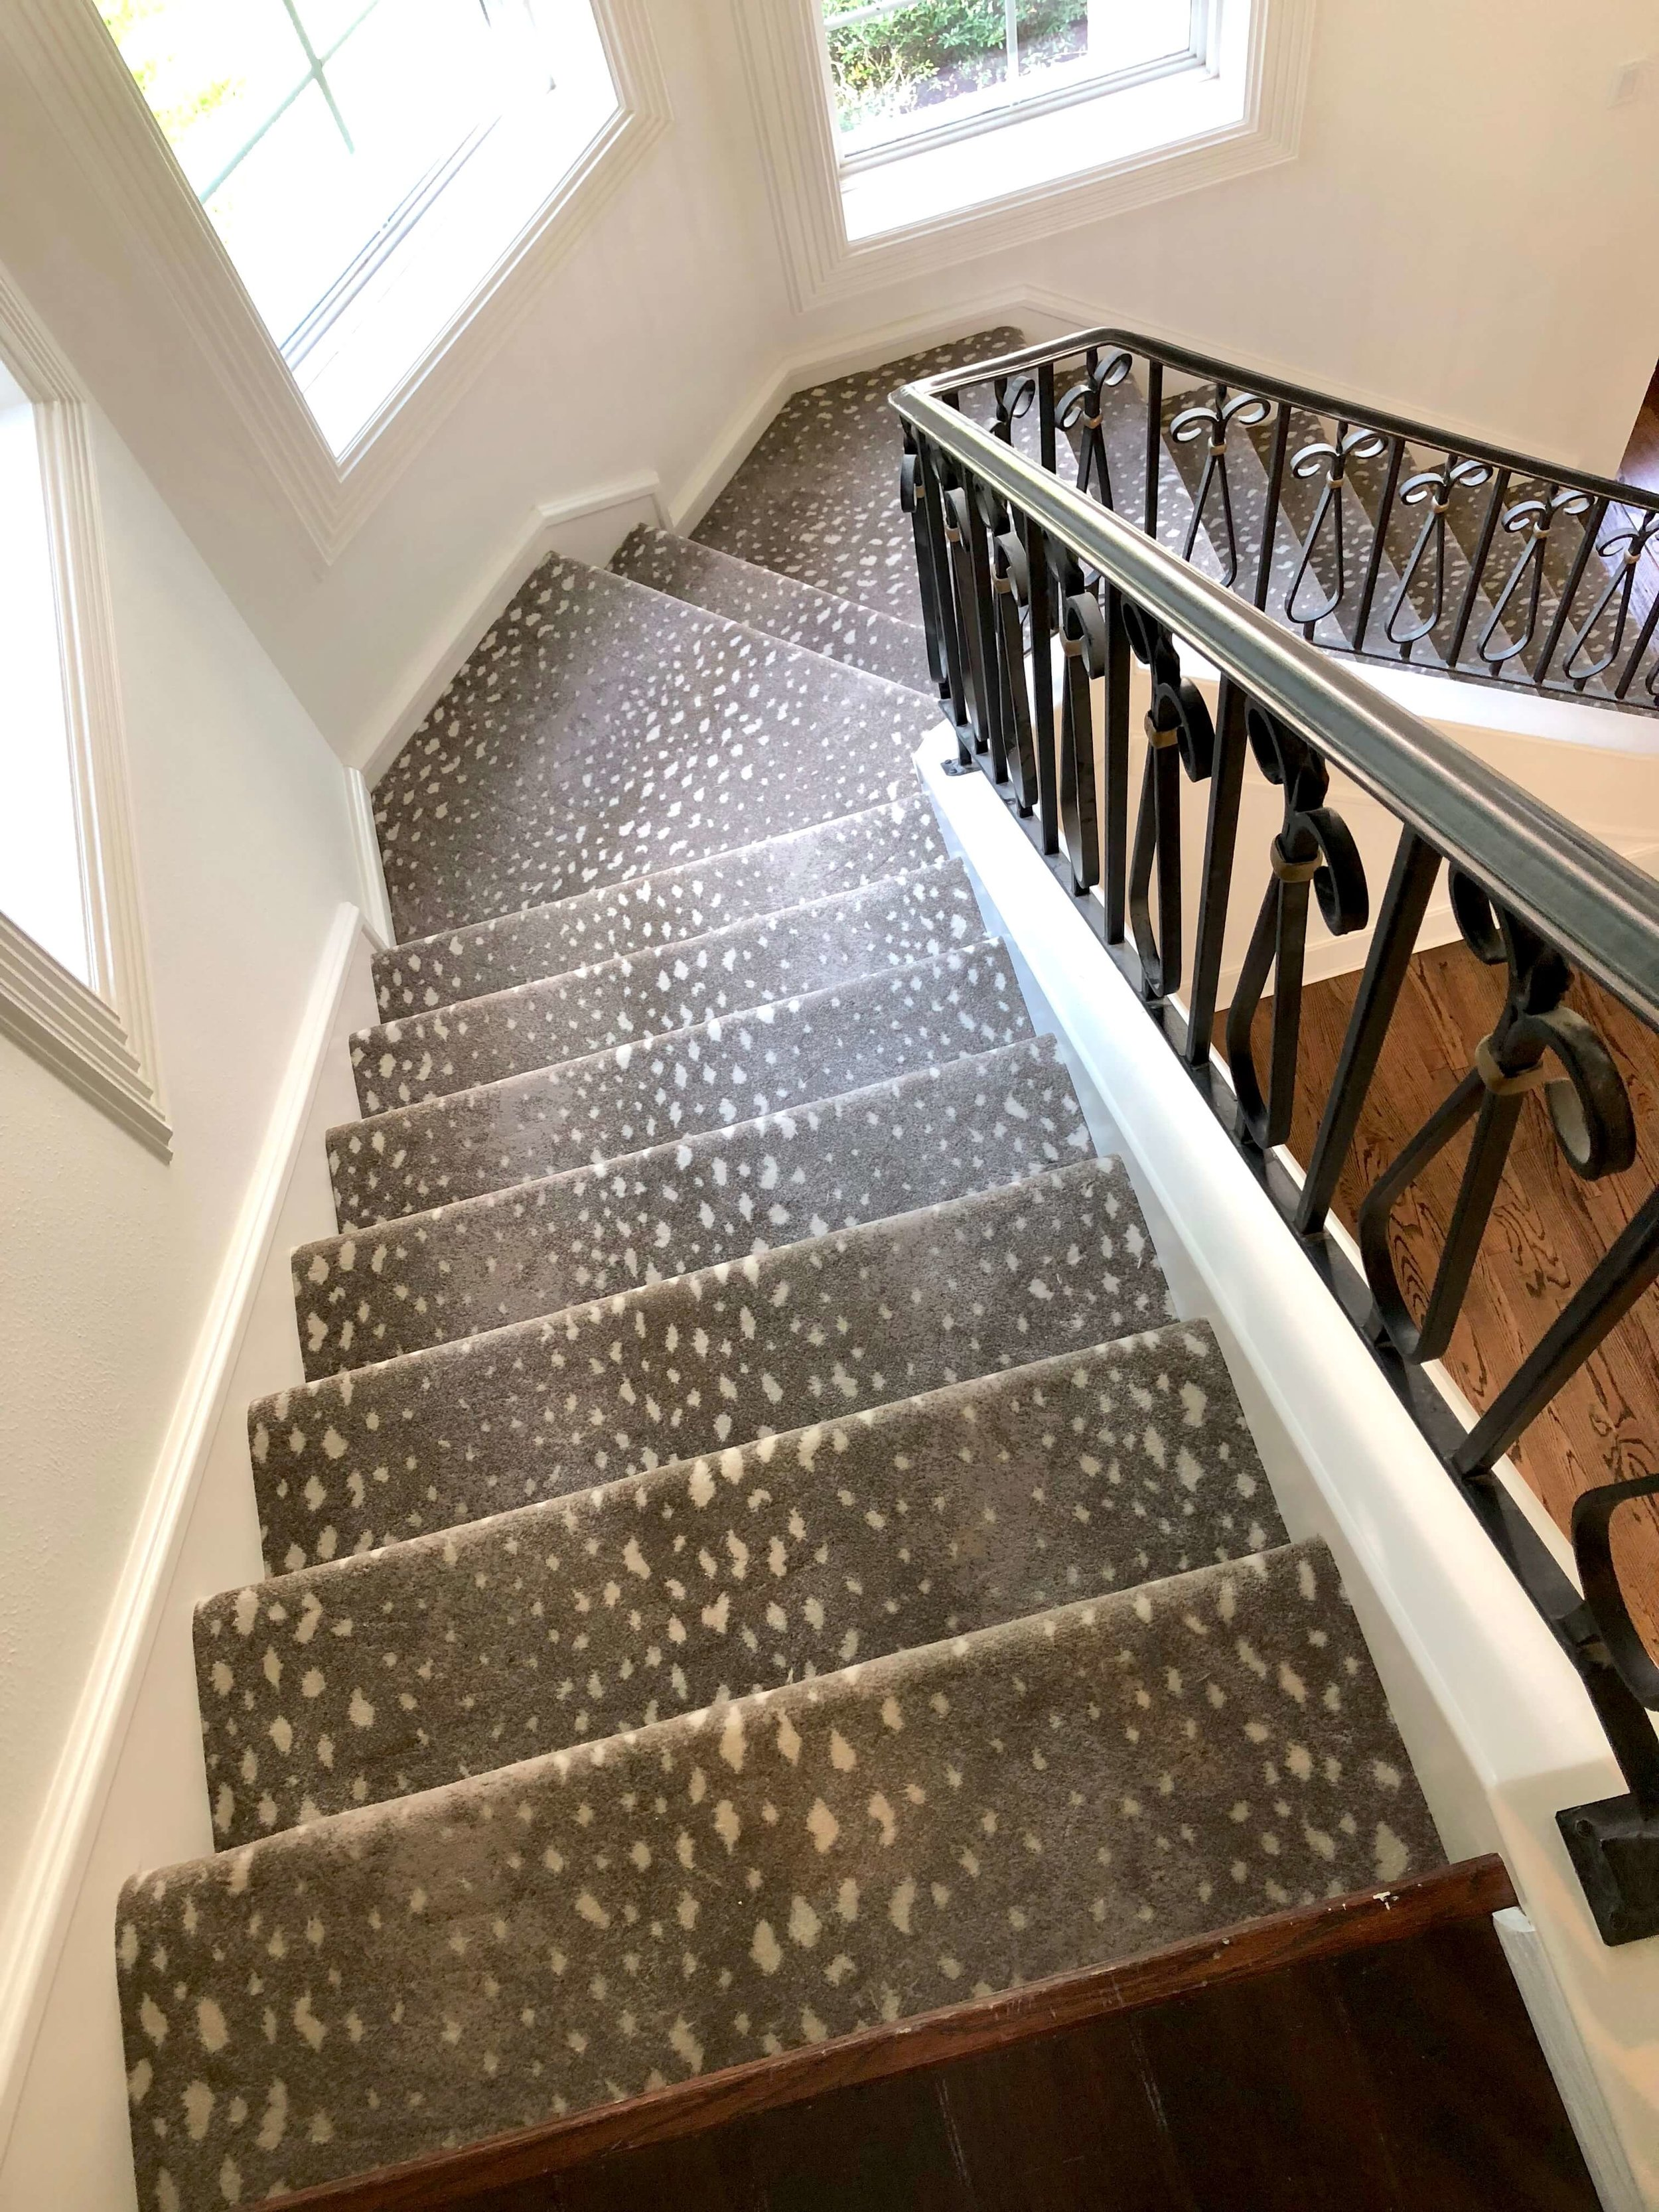 This antelope pattern carpet hides all kinds of soil and wears well on stairs. #animalprintcarpet #rugideas #rugs #stairrunner